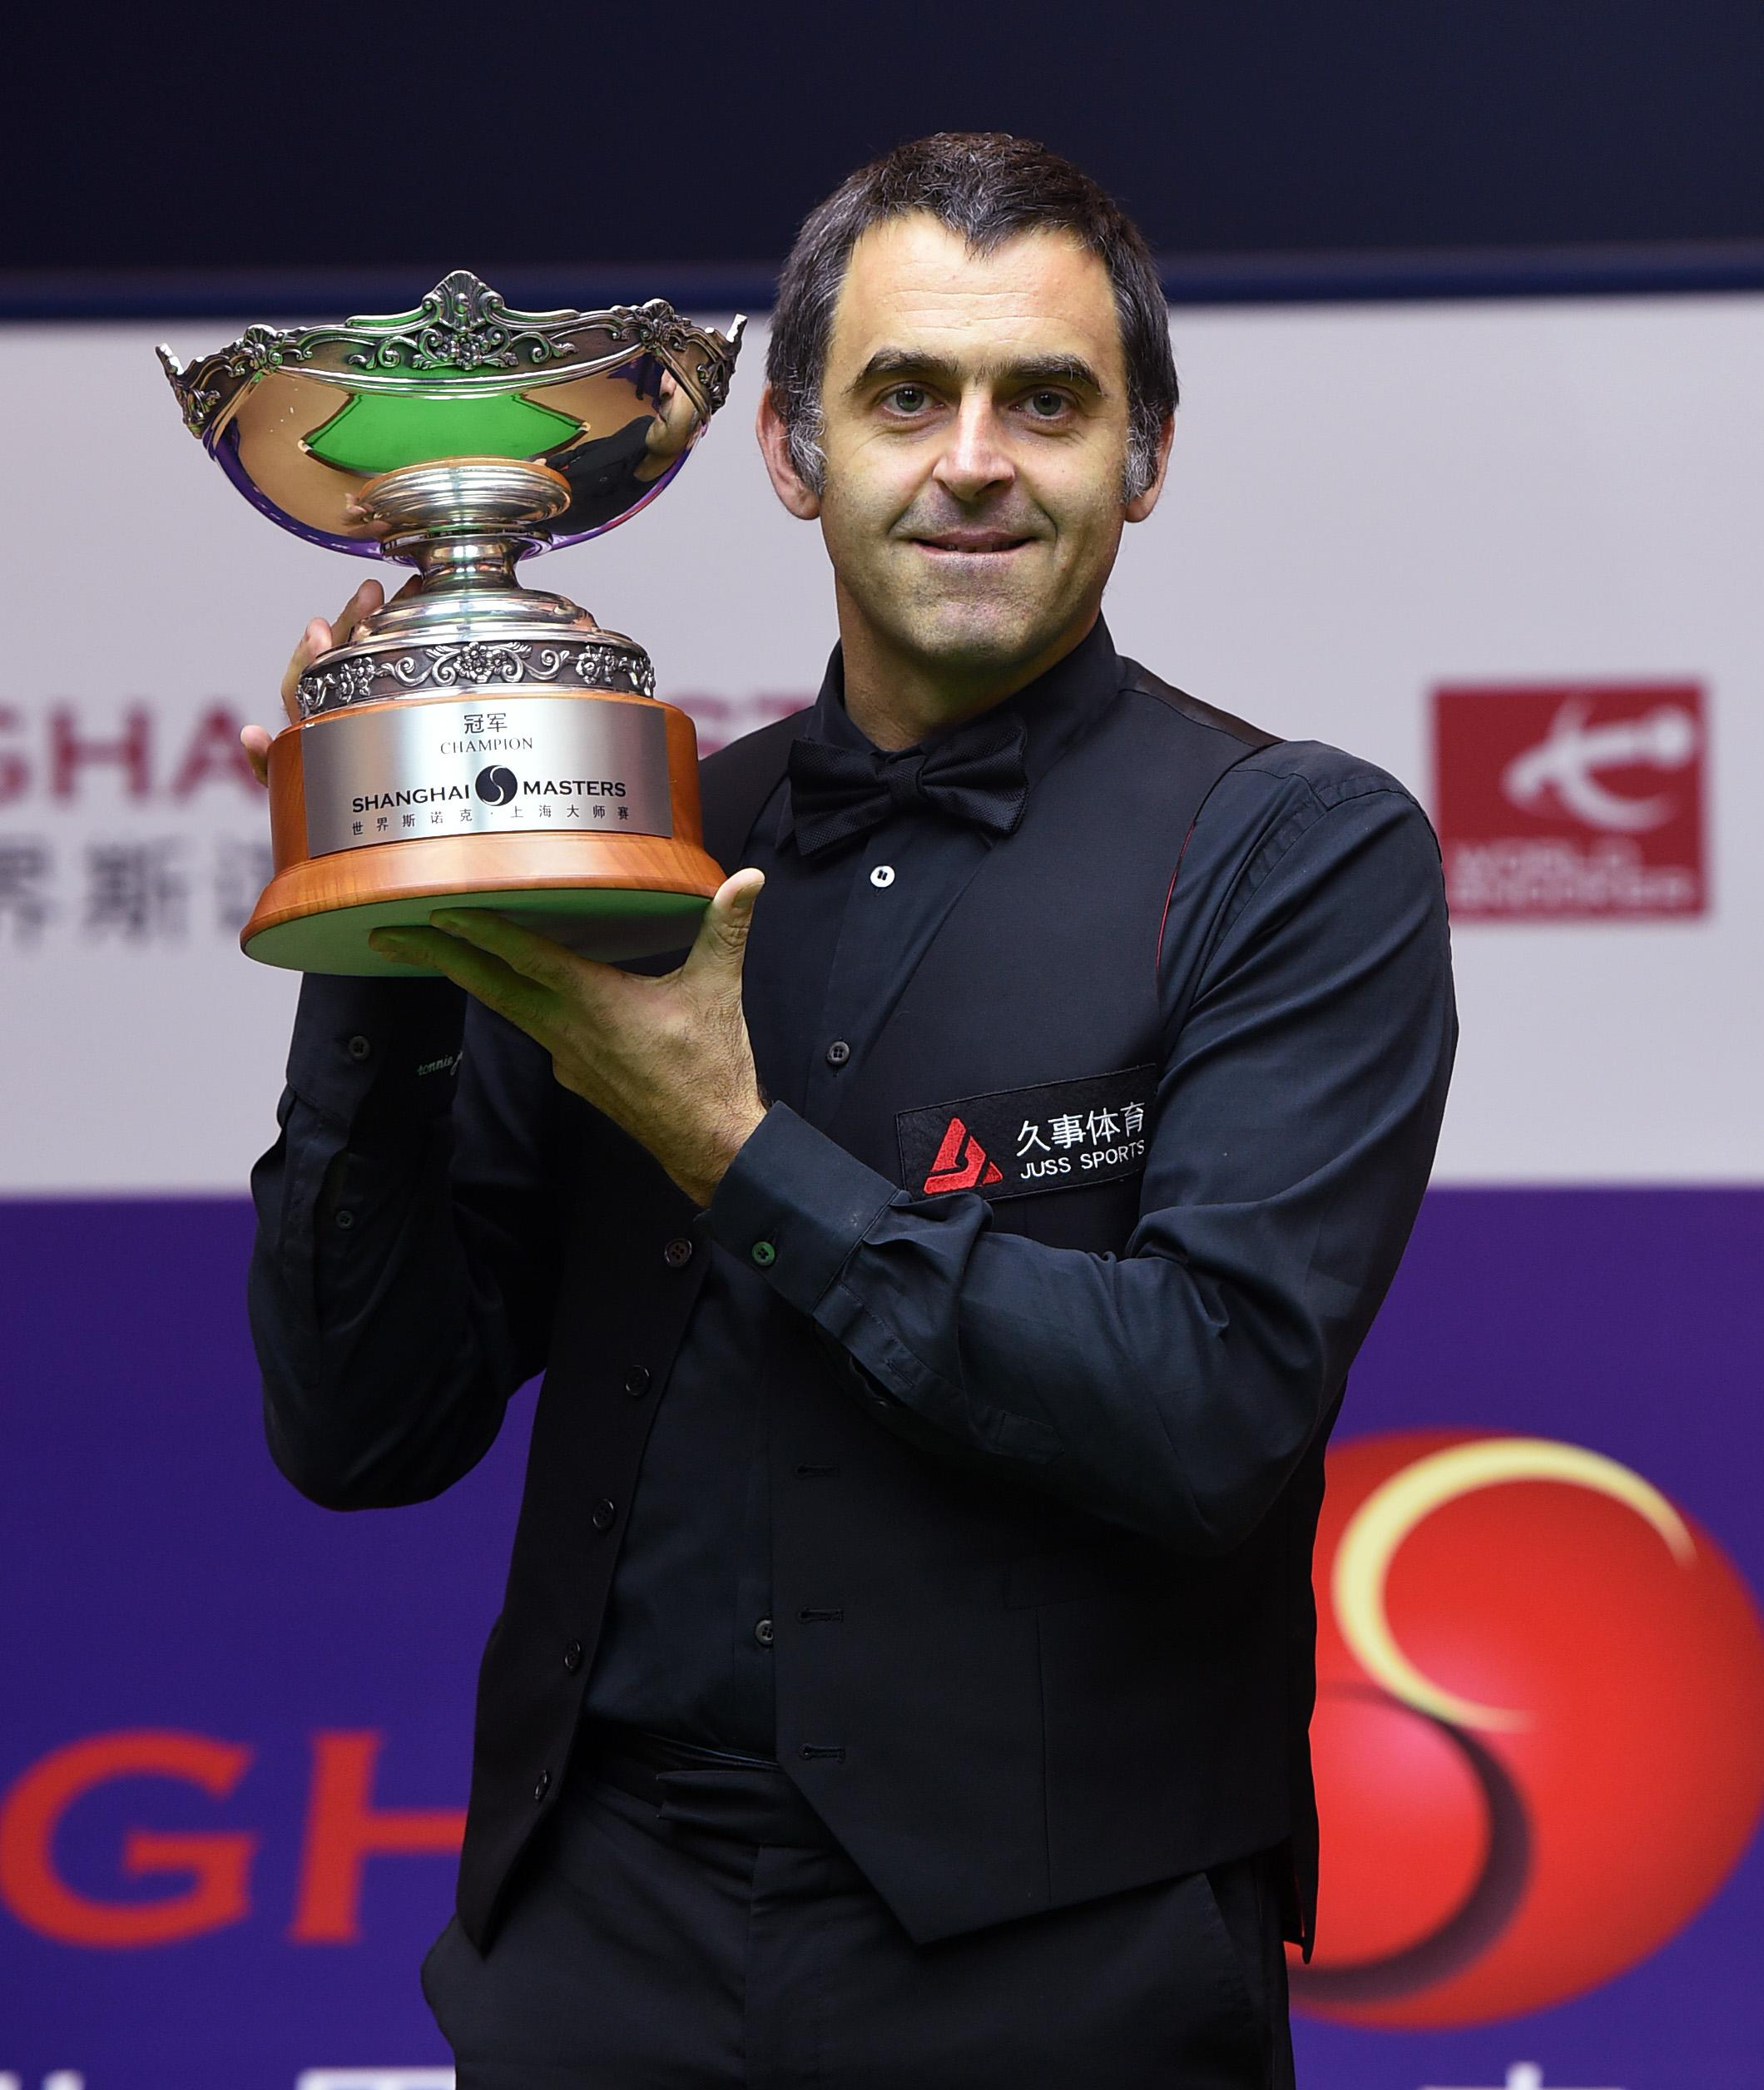 Five-time world champion Ronnie O'Sullivan is famed for his angry outbursts